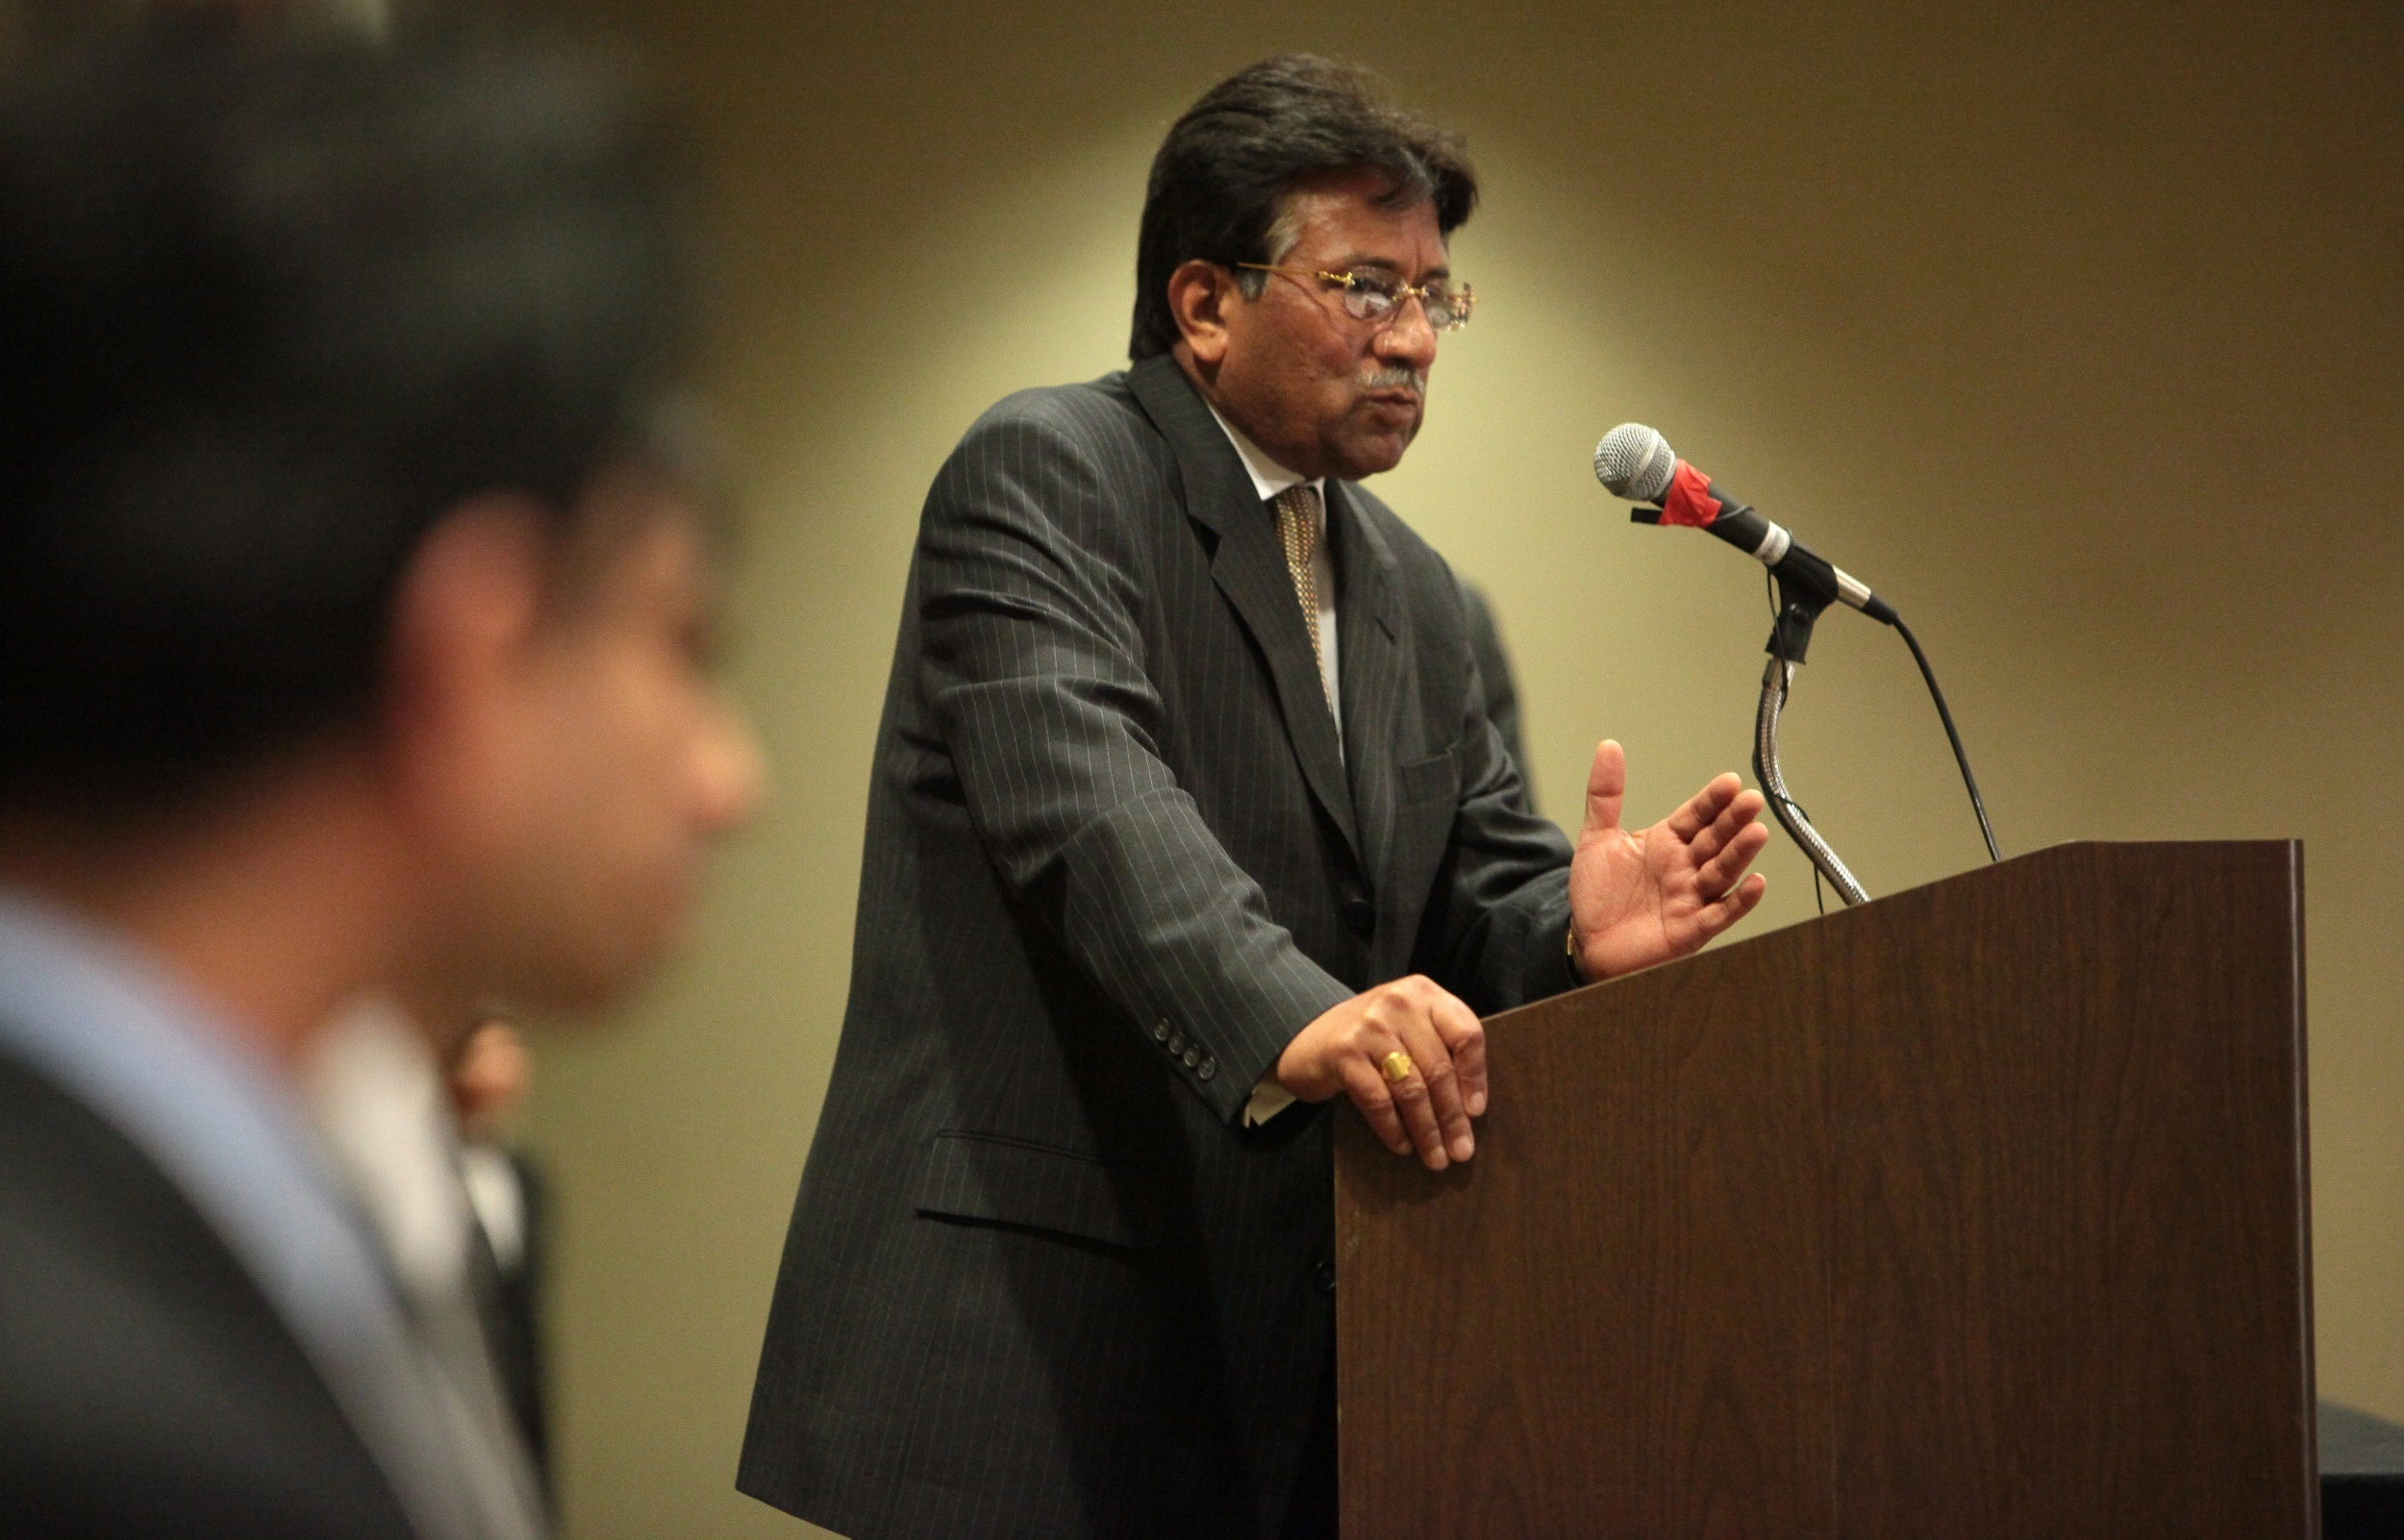 Former president Musharraf speaks during an event at the Westin Hotel in Bellevue, Washington on March 14, 2010. The former president spoke for almost an hour and took questions from the audience. — AP